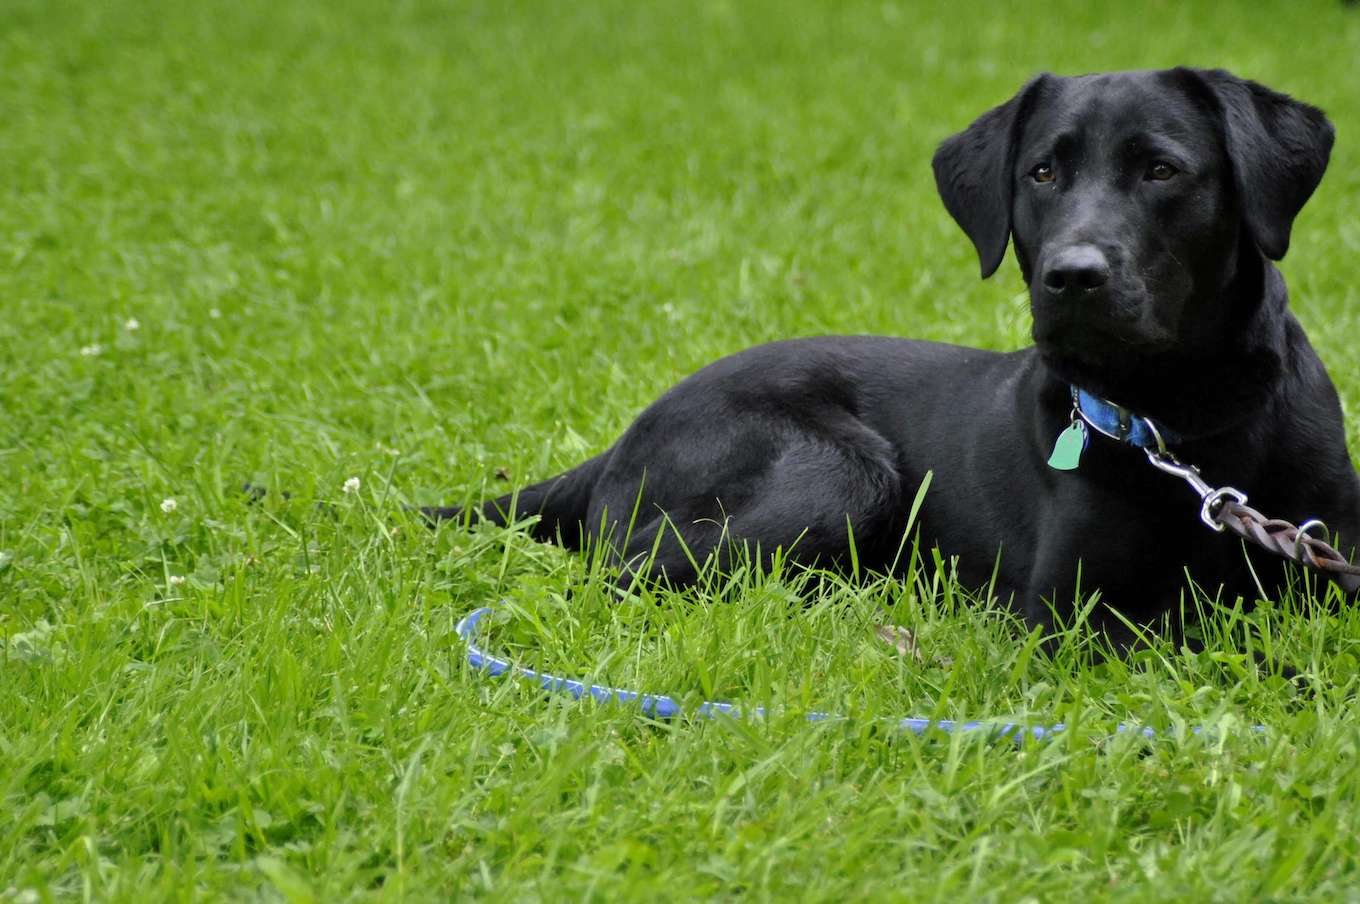 A photo of a black dog surrounded by green grass to demonstrate using a simple background in pet photography.